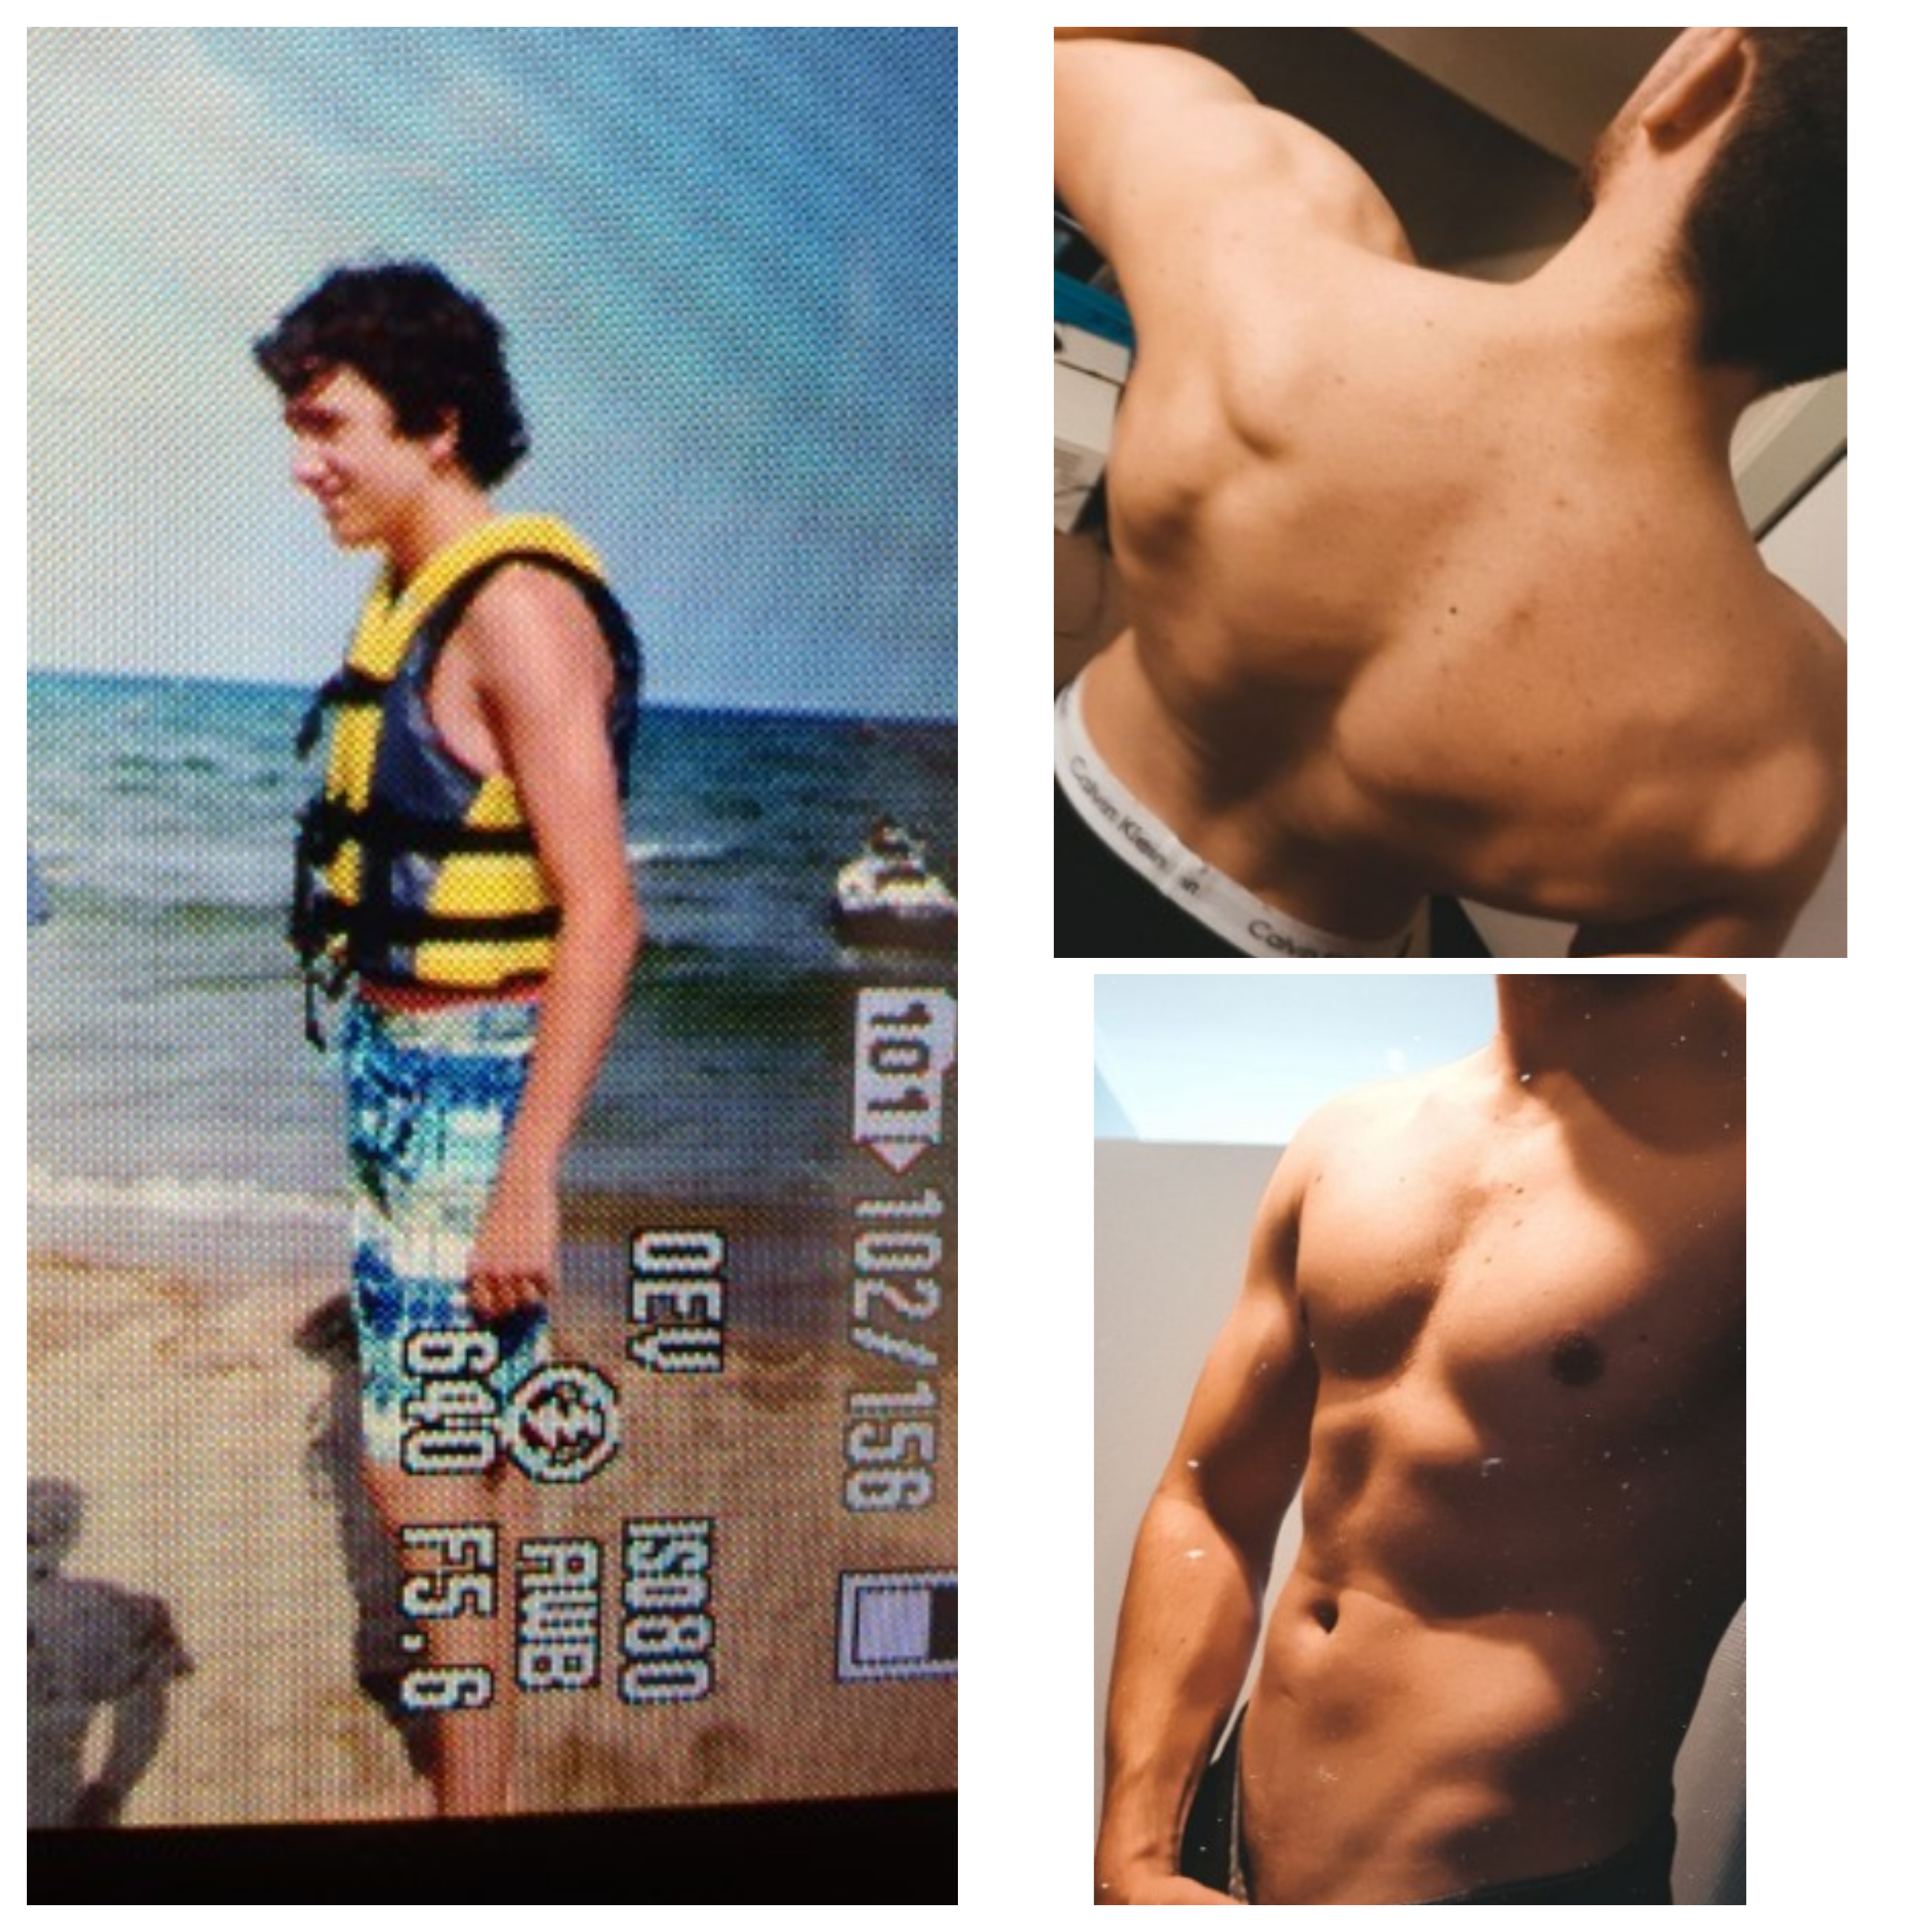 6 foot 1 Male Before and After 37 lbs Muscle Gain 143 lbs to 180 lbs